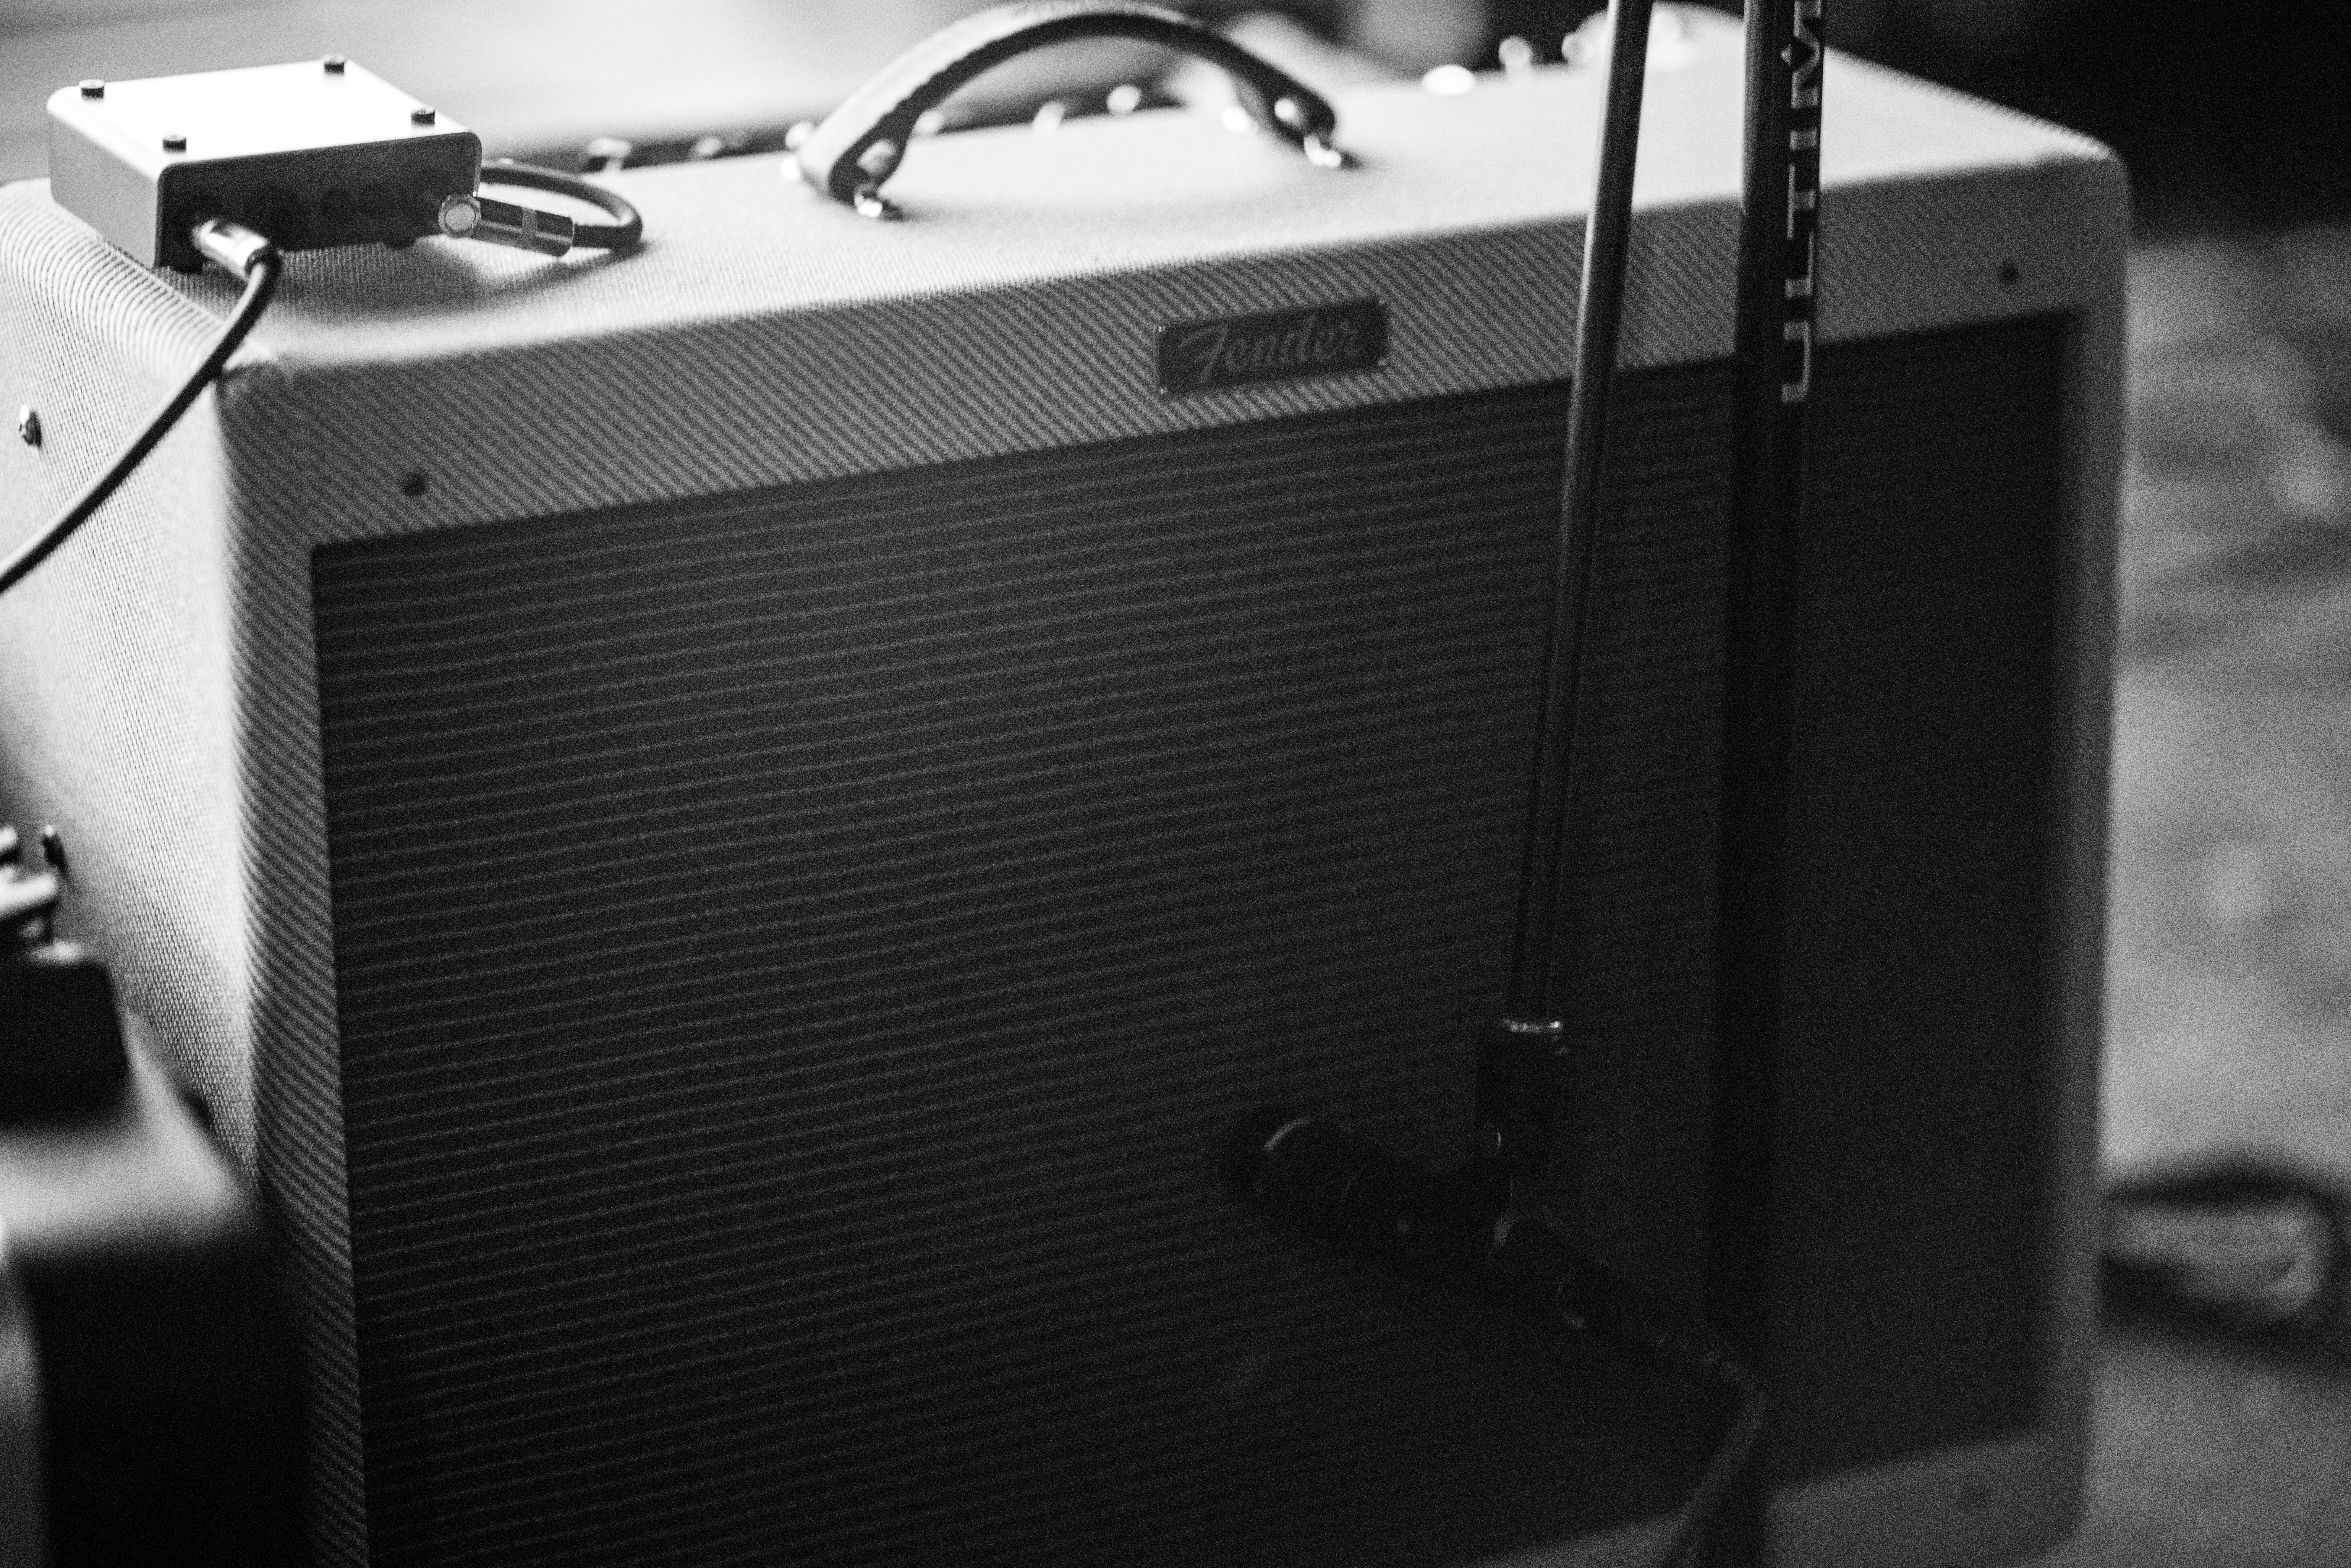 How To Record Electric Guitars The Easy Way - Audio Issues